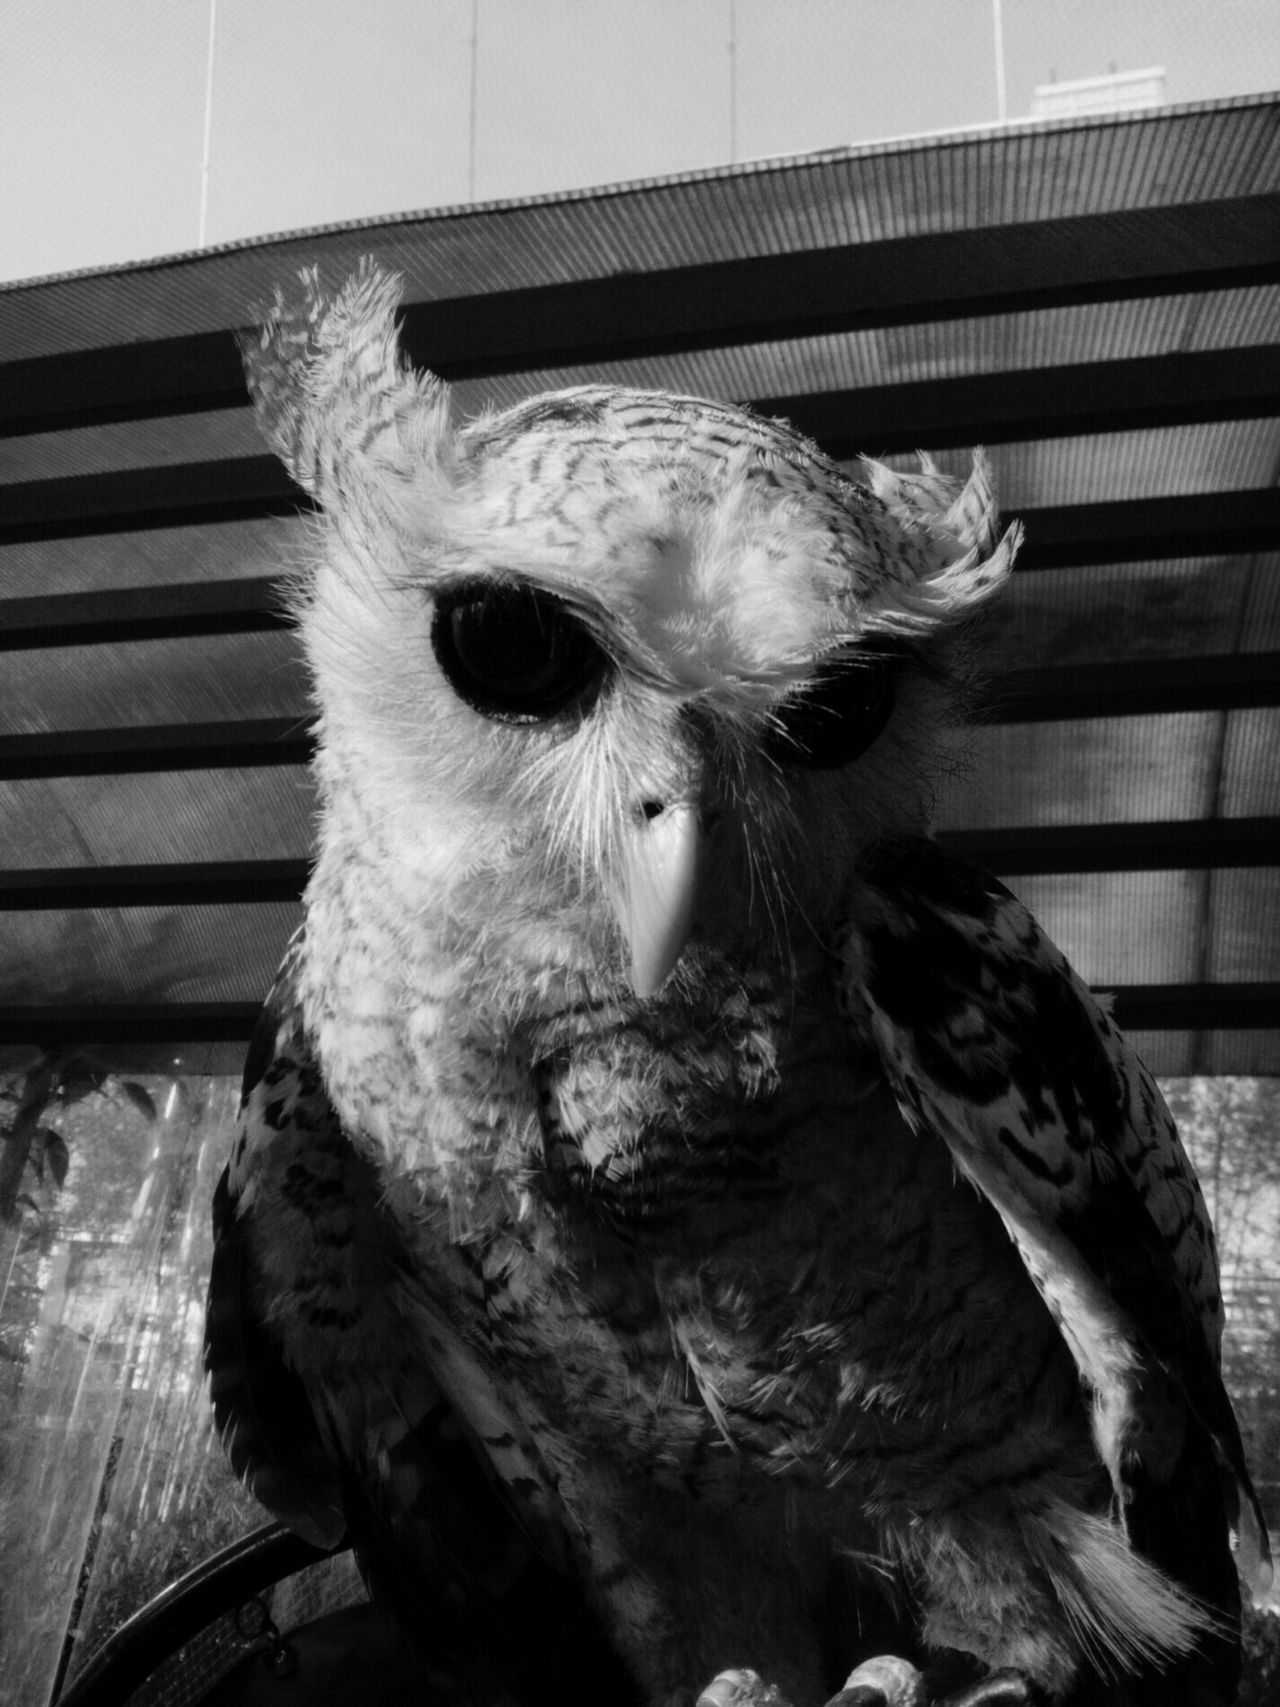 Close-up Indoors  No People One Animal Animal Themes Stuffed Day Mammal Black And White Black And White Photography Owl Ominous Owl Eyes Owl Art